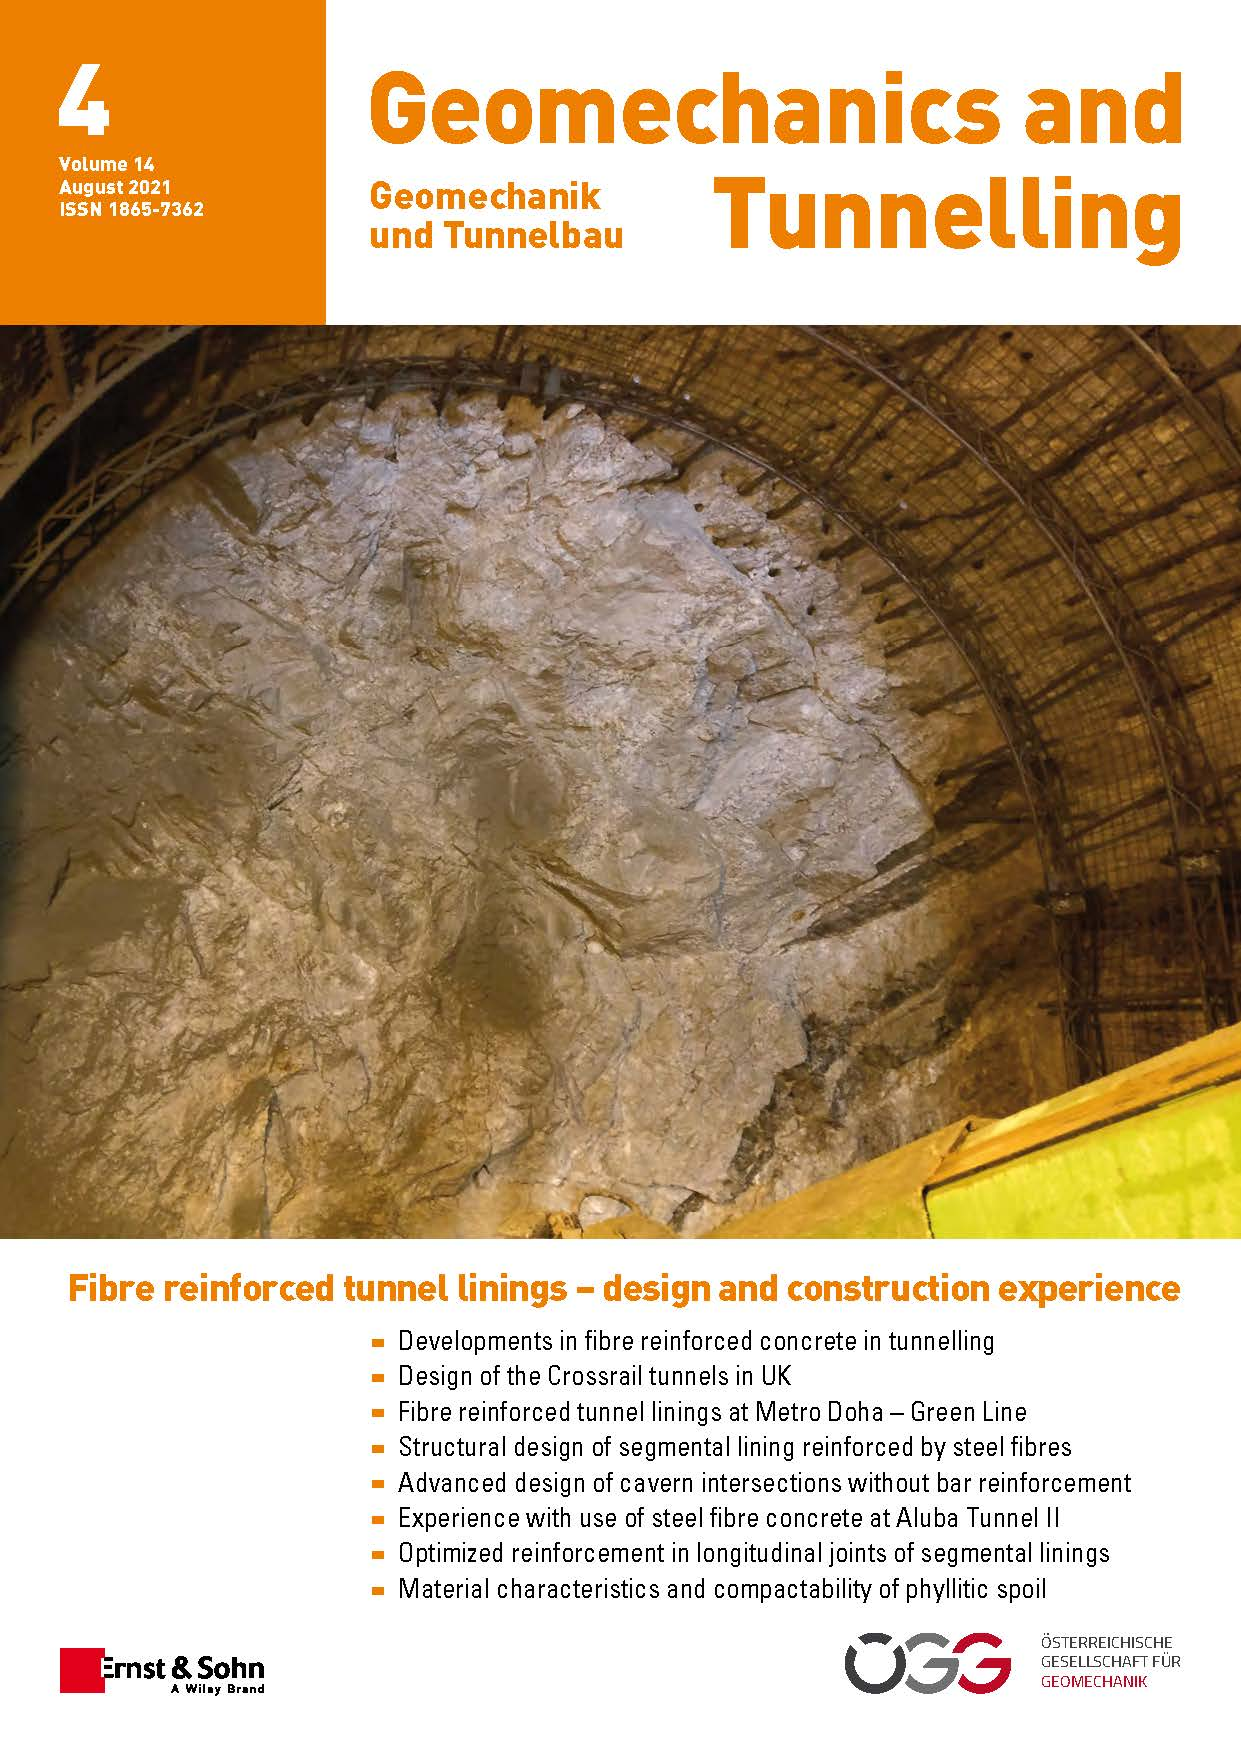 Journal Geomechanics and Tunnelling 4/21 published